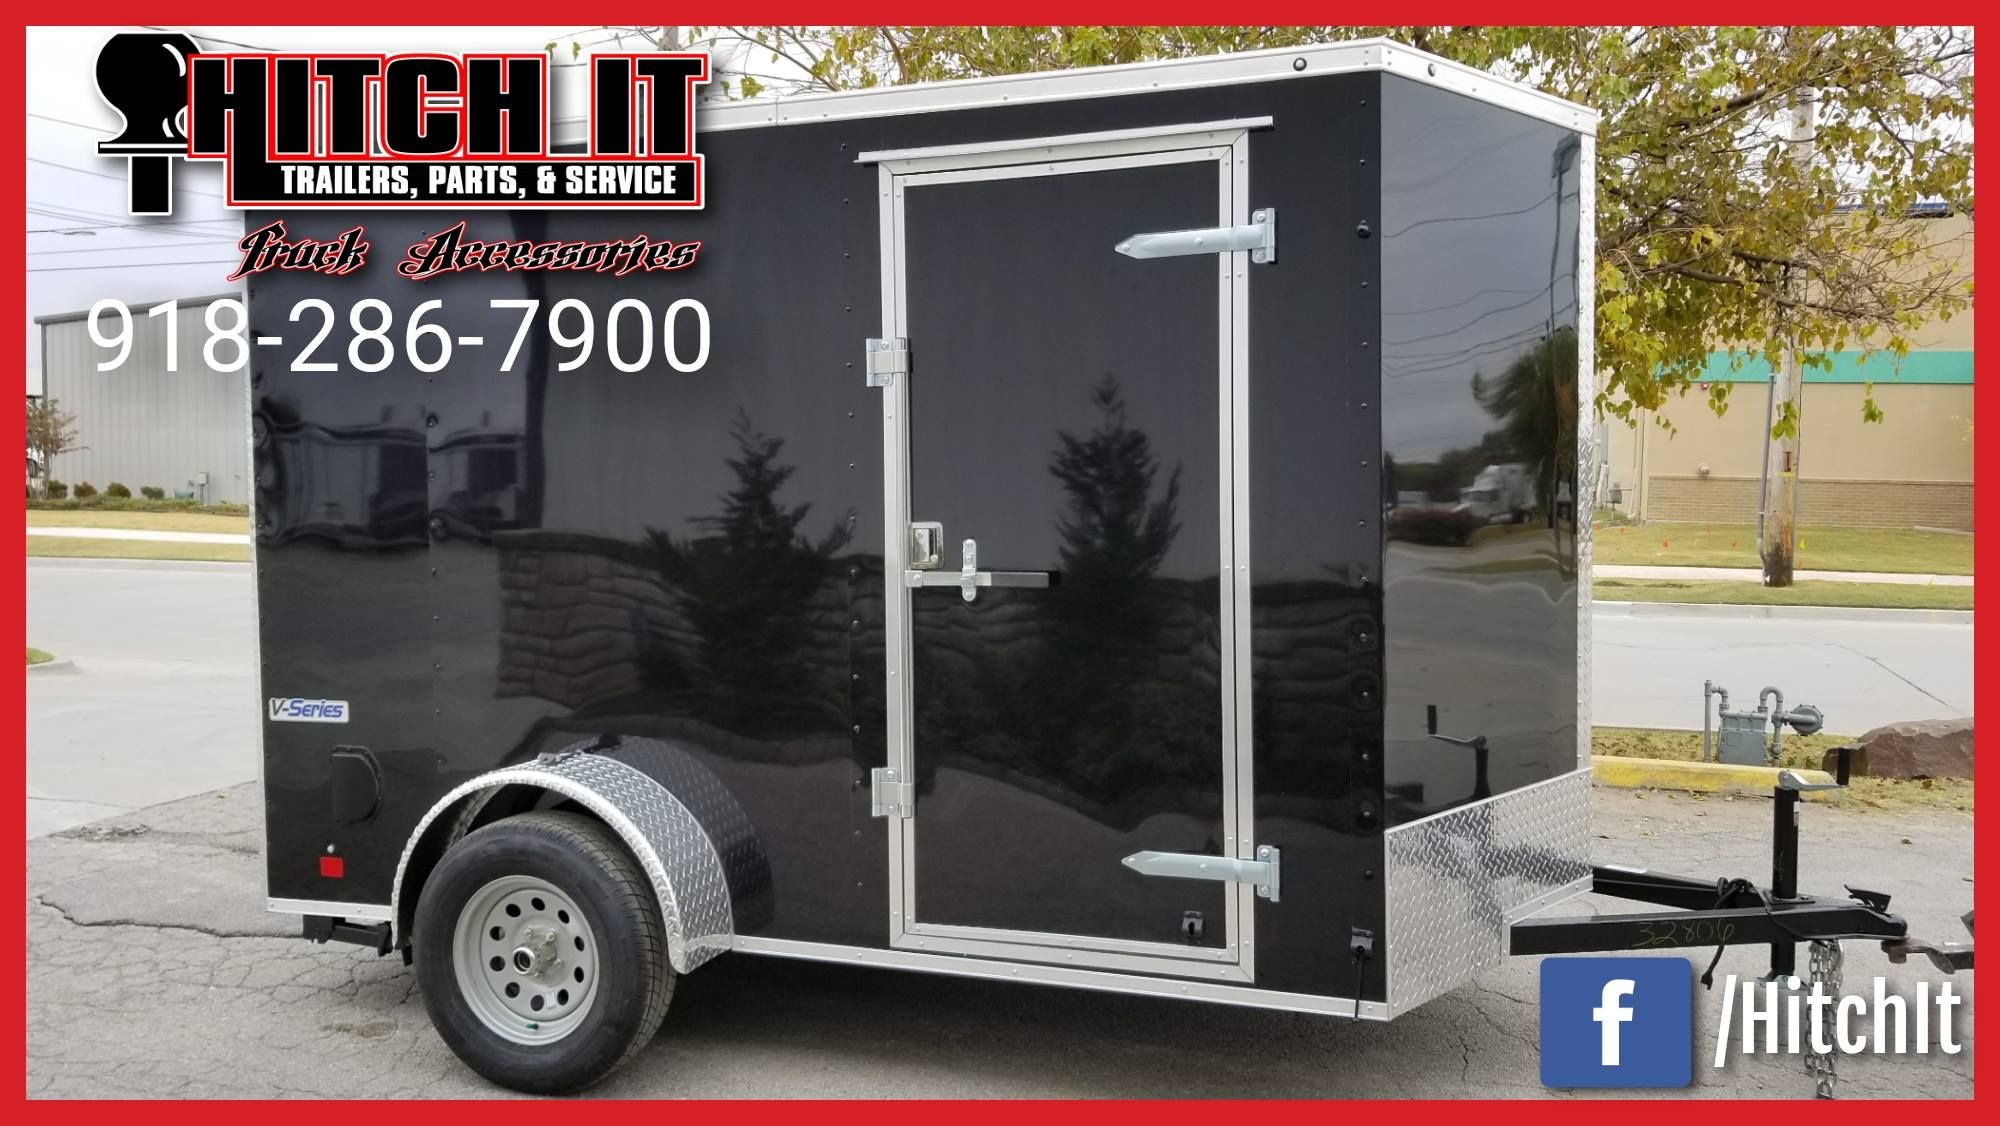 6 X 10 CONTINENTAL CARGO Hitch It Trailers Sales, Parts